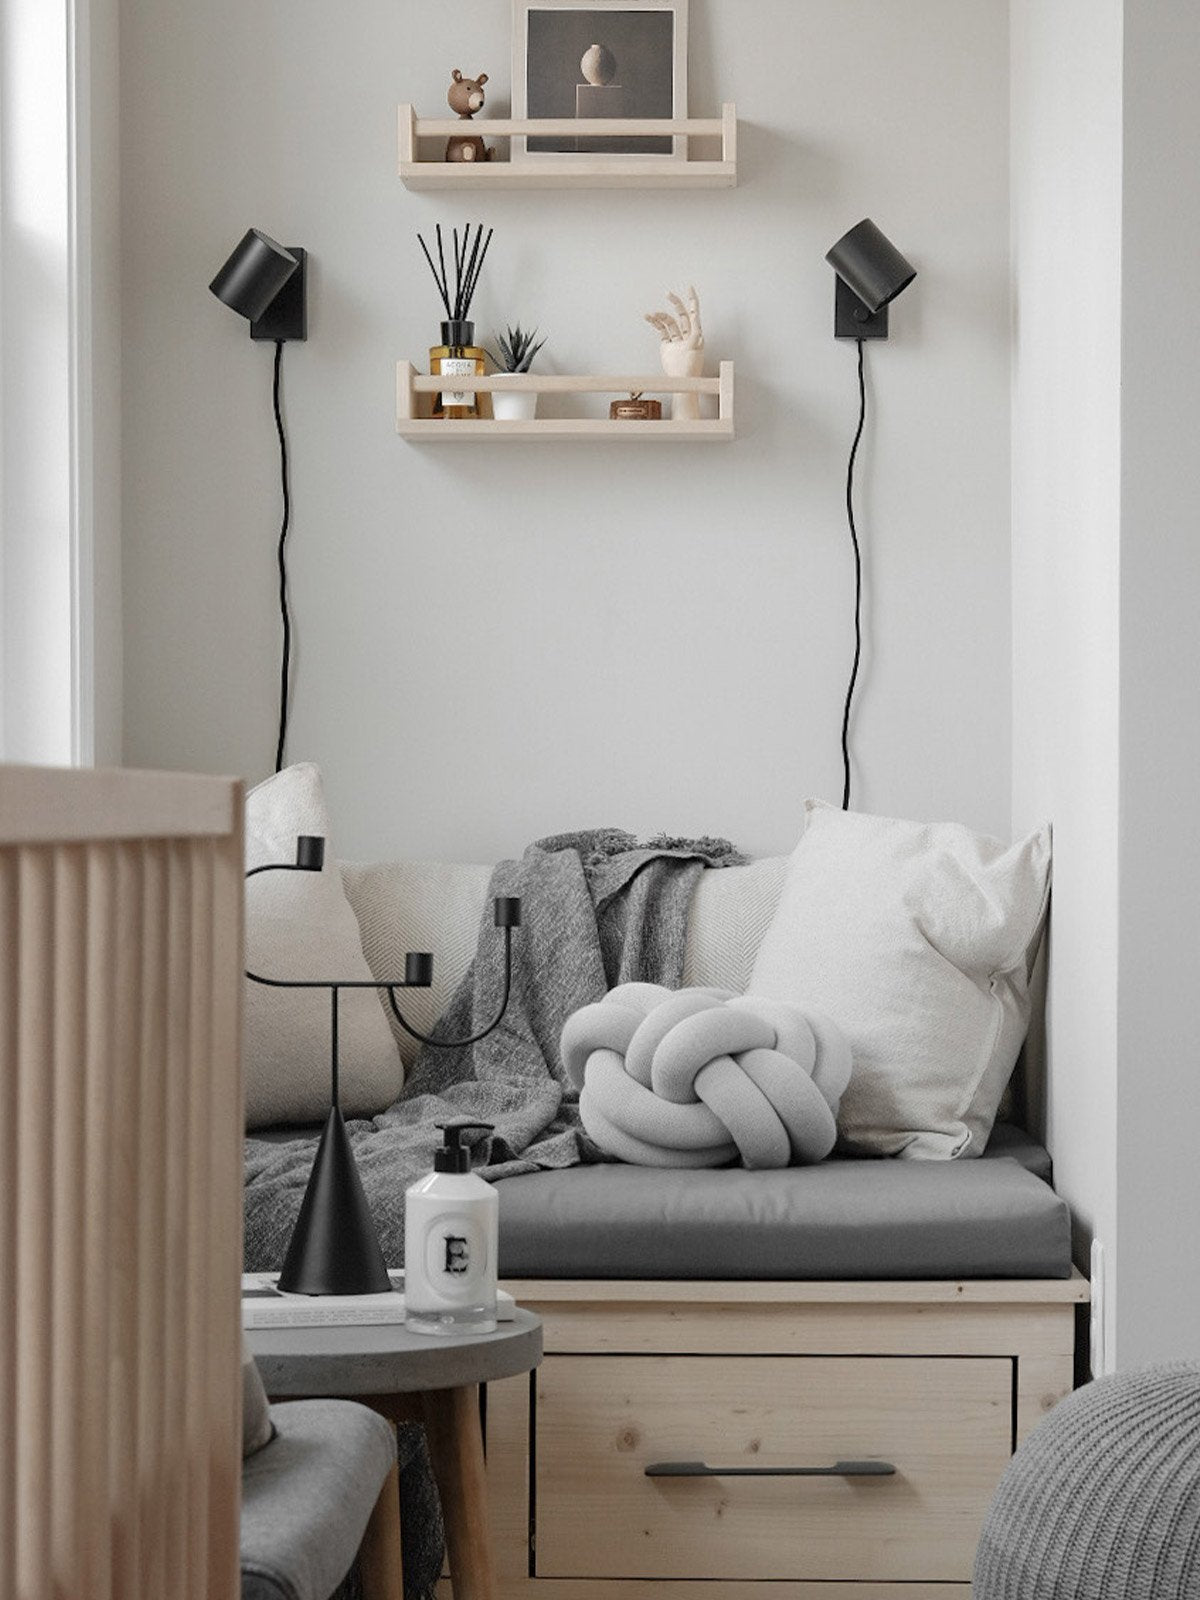 knotcushion_whitegrey_lifestyle1_miljuu.com_vallin_1301-010